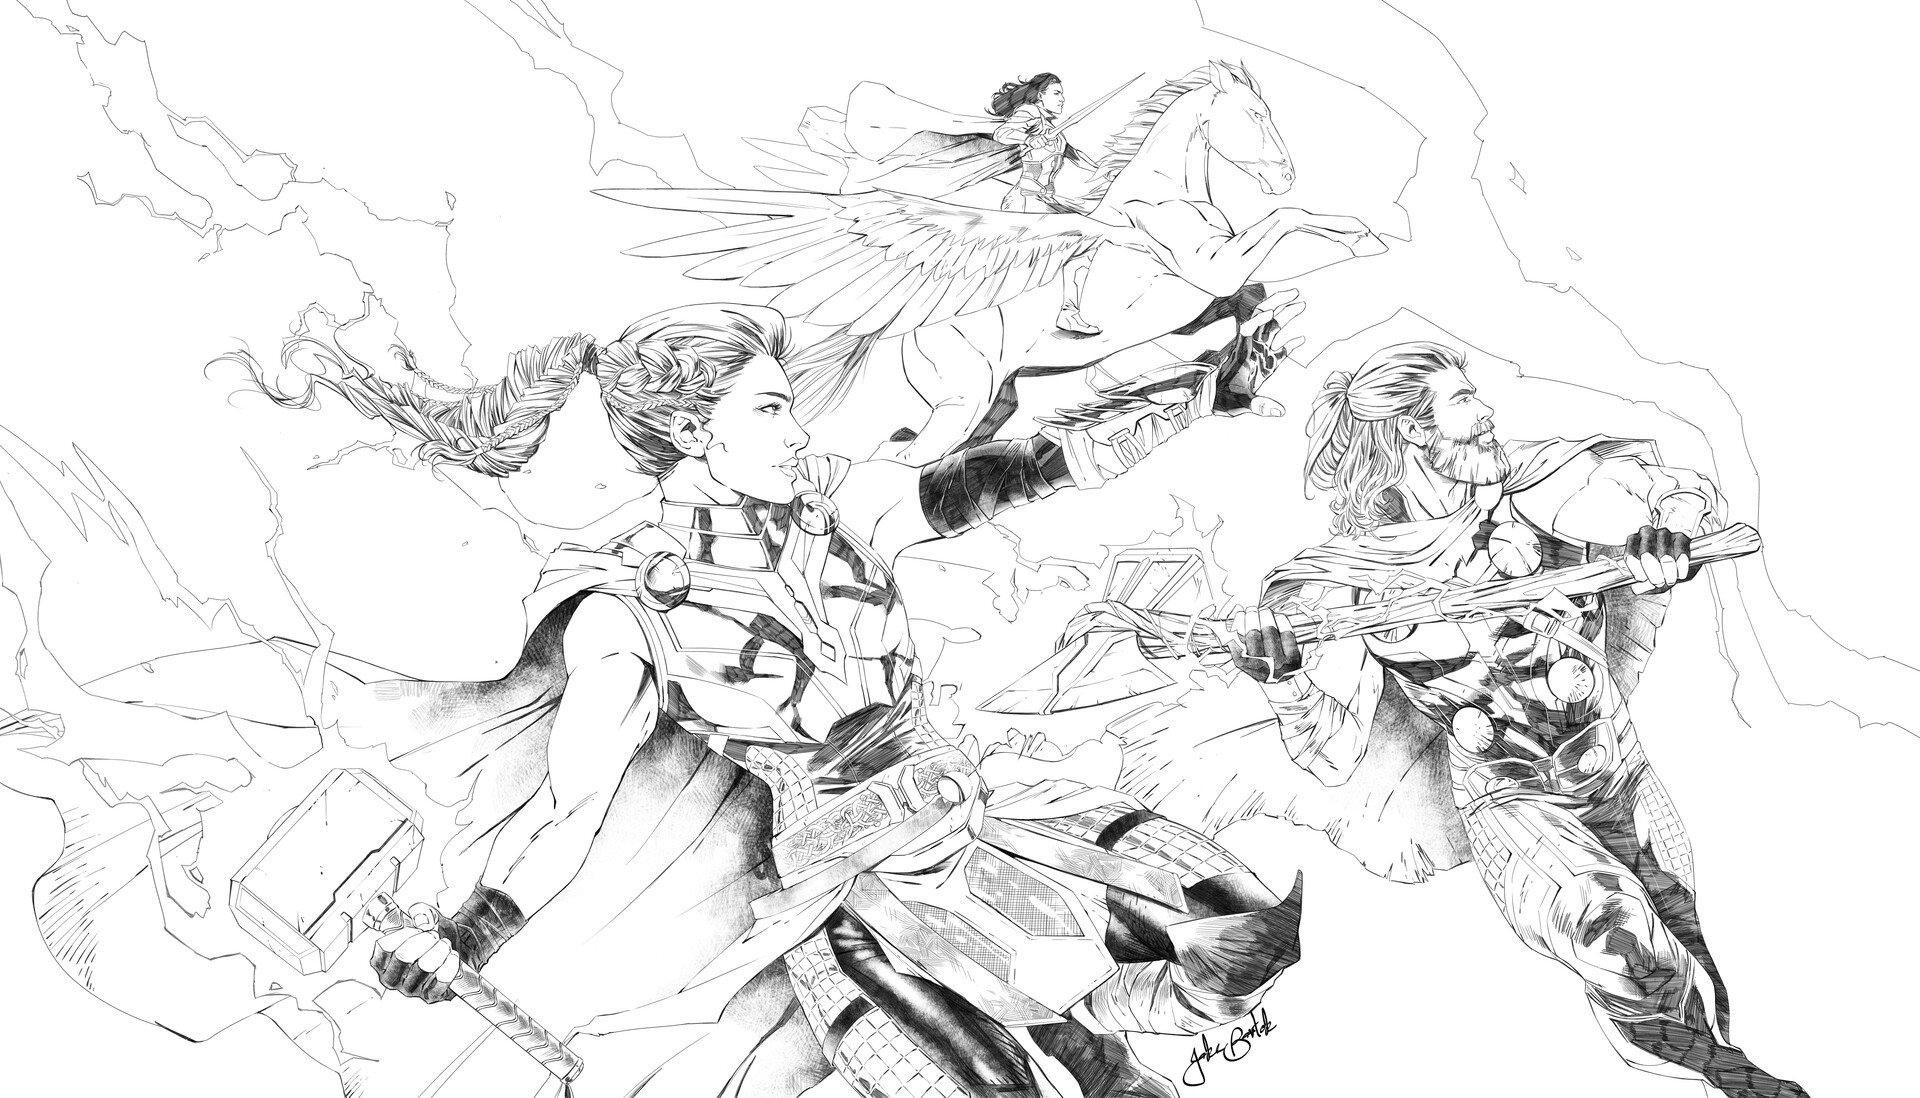 Finished Pencils